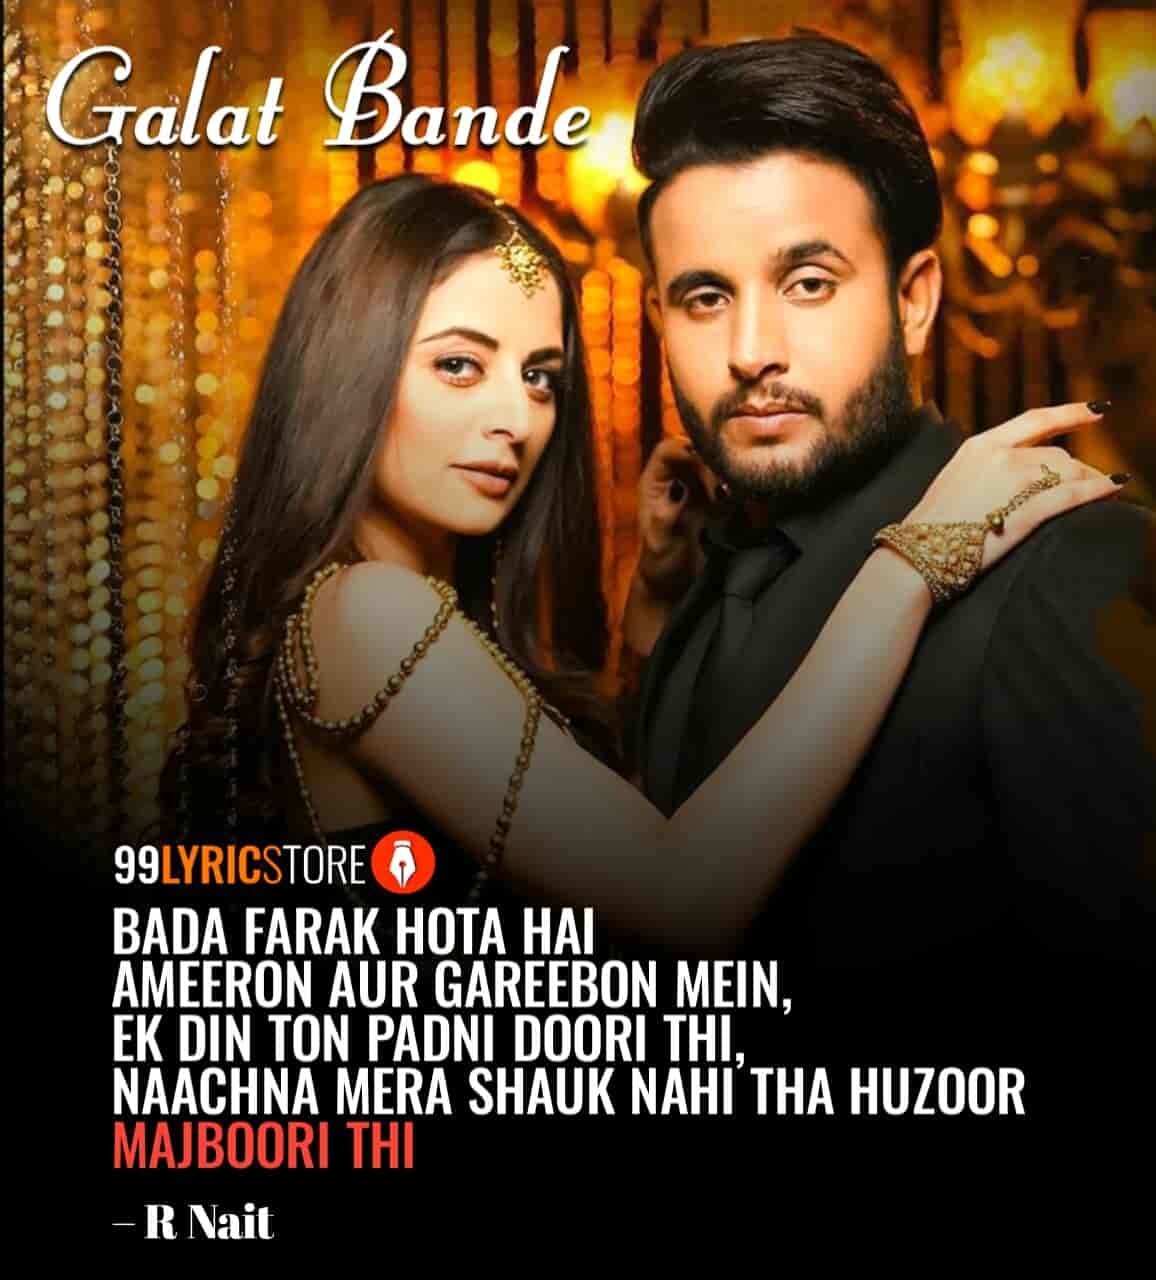 Galat Bande Lyrics Images By R Nait